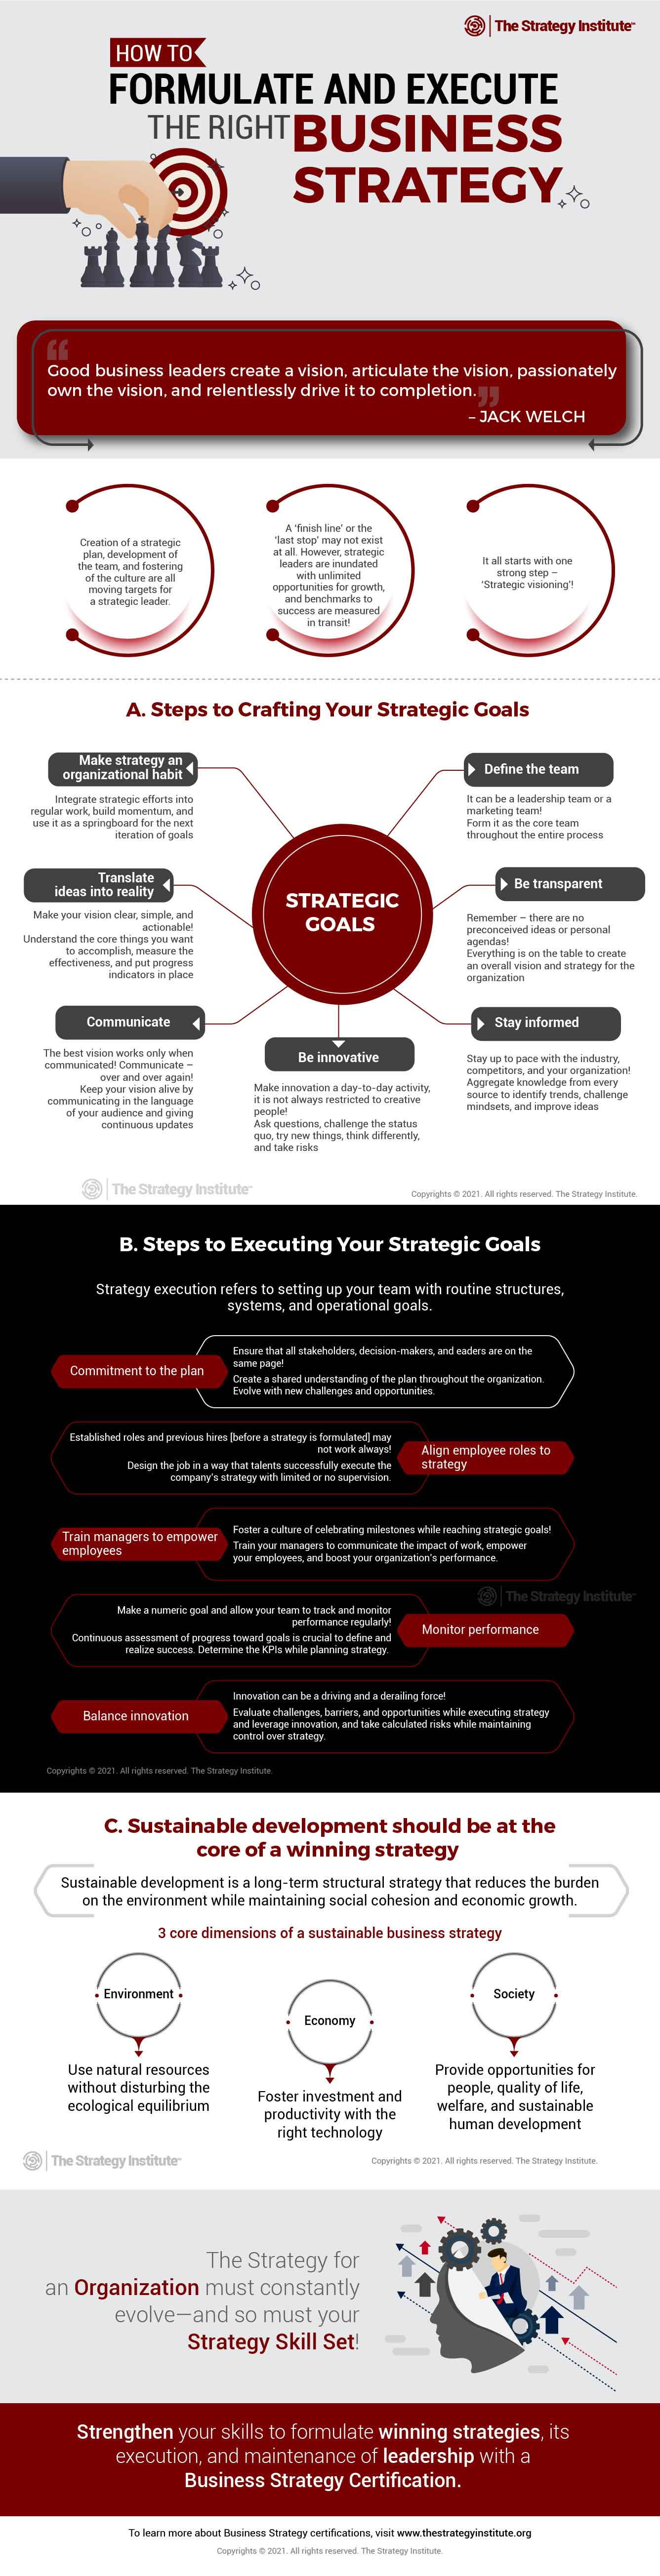 How to Formulate and Execute the Right Business Strategy